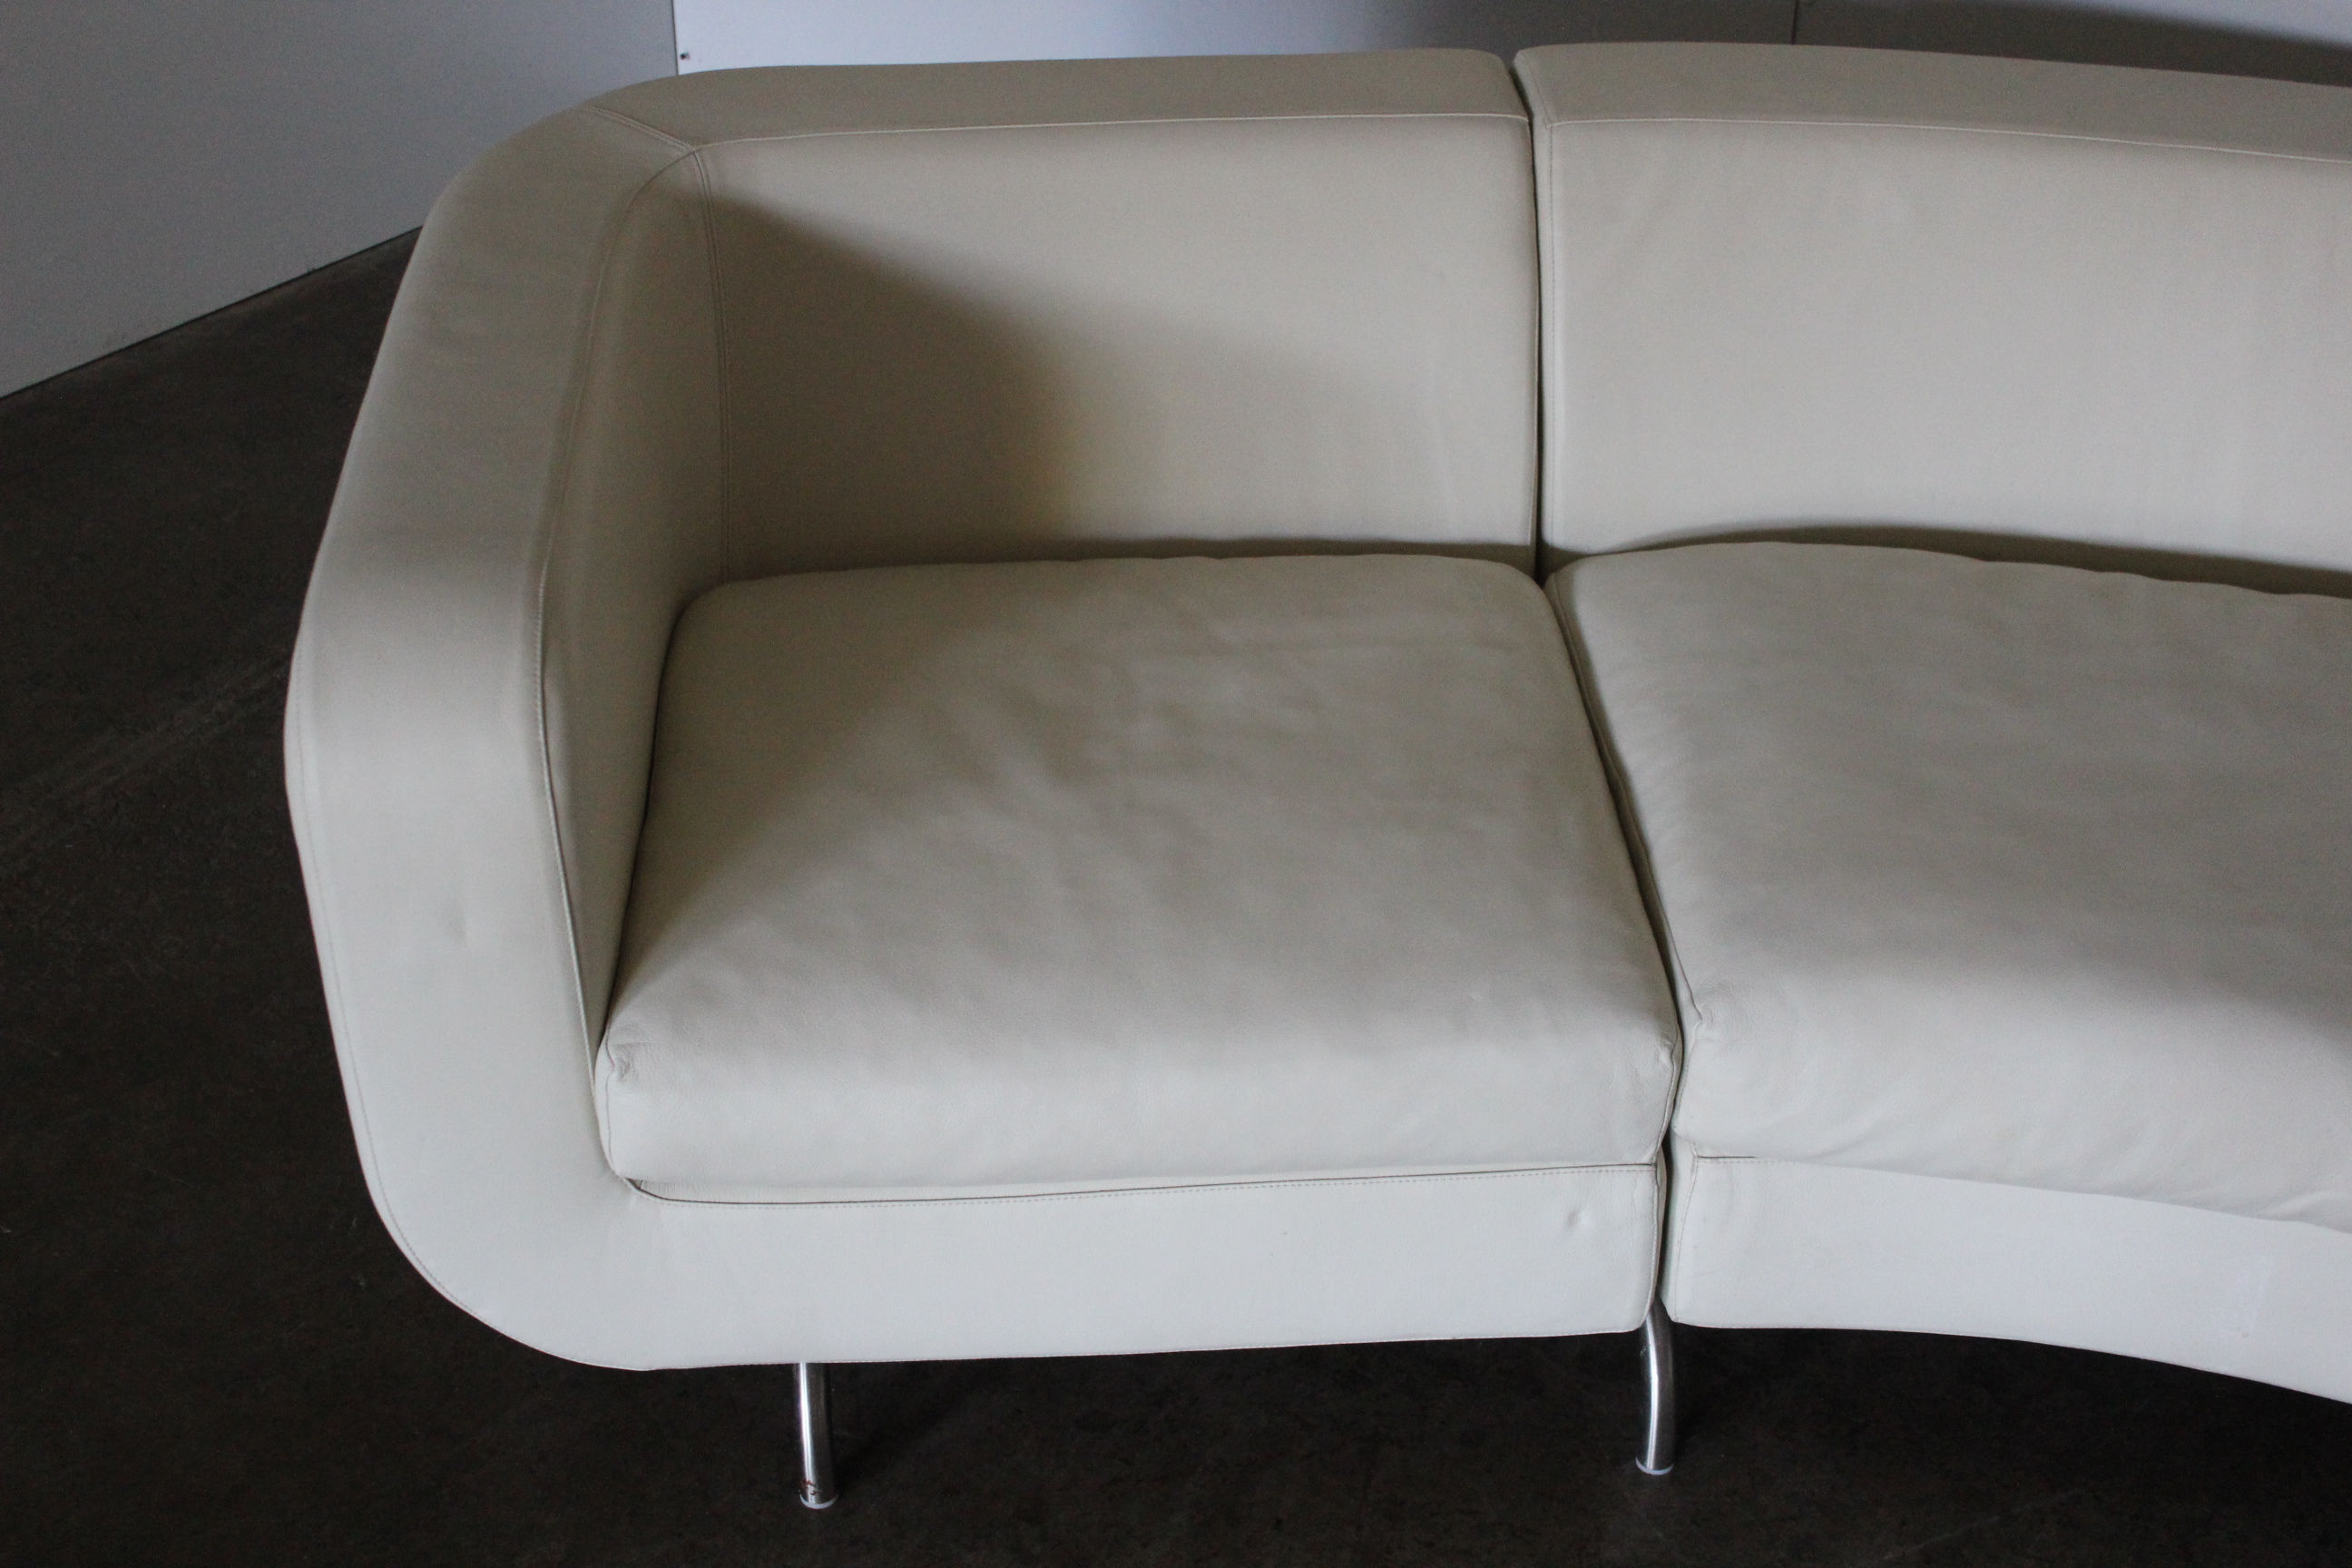 Rare Huge Pristine Minotti Dubuffet Curved Sofa In Cream